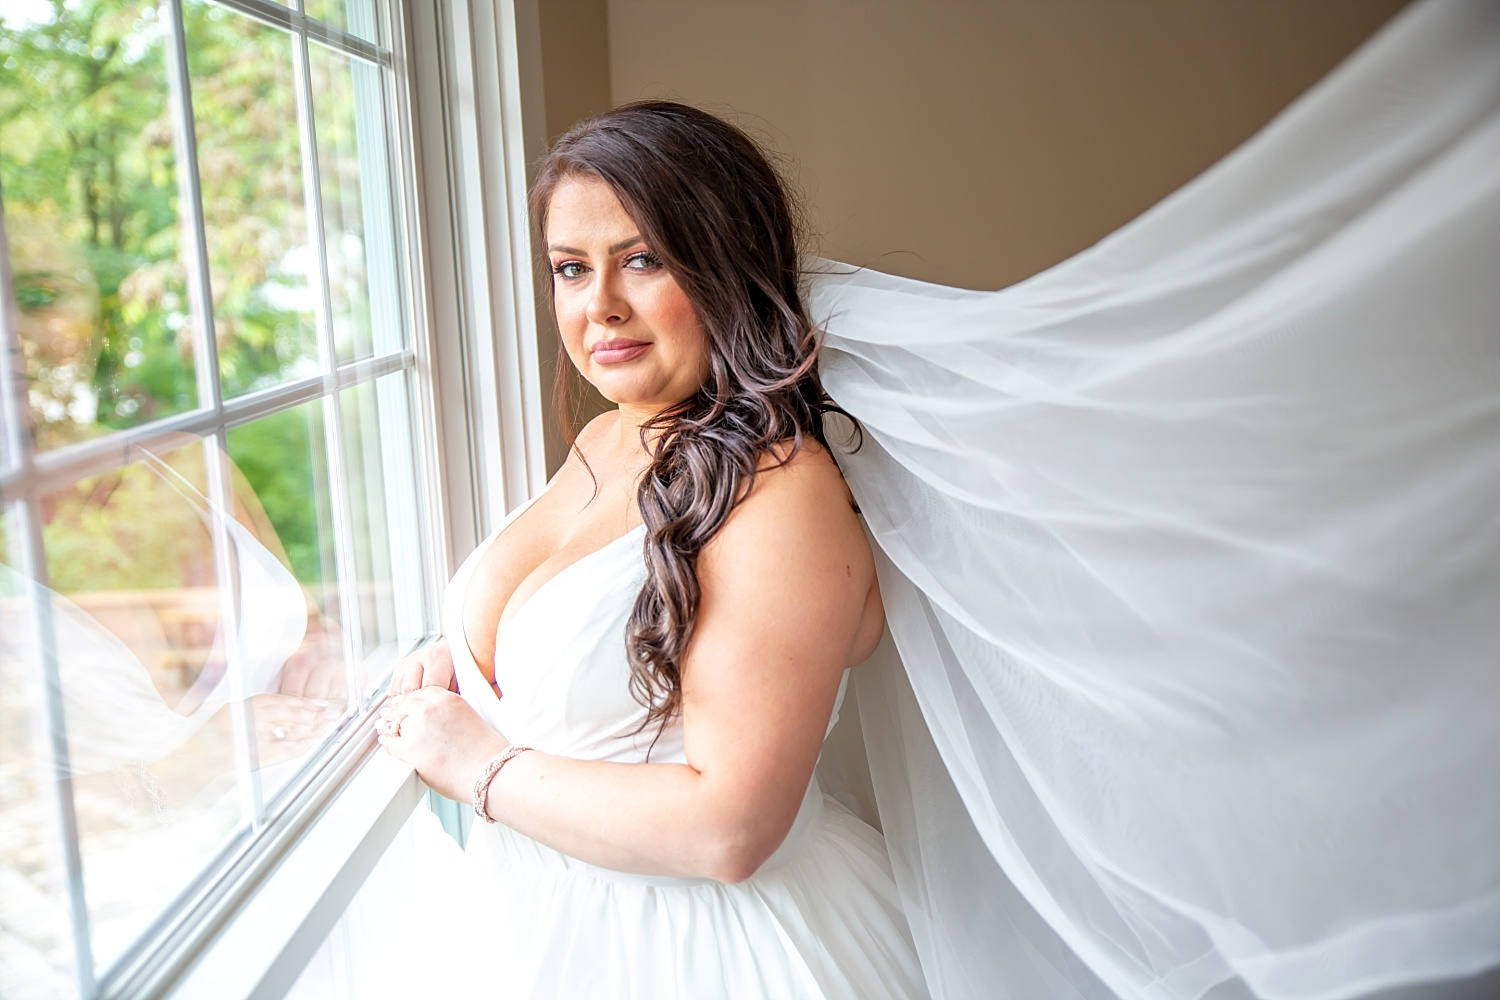 Hannah-cessna-photography-akron-cleveland-ohio-wedding-photograper_0046.jpg